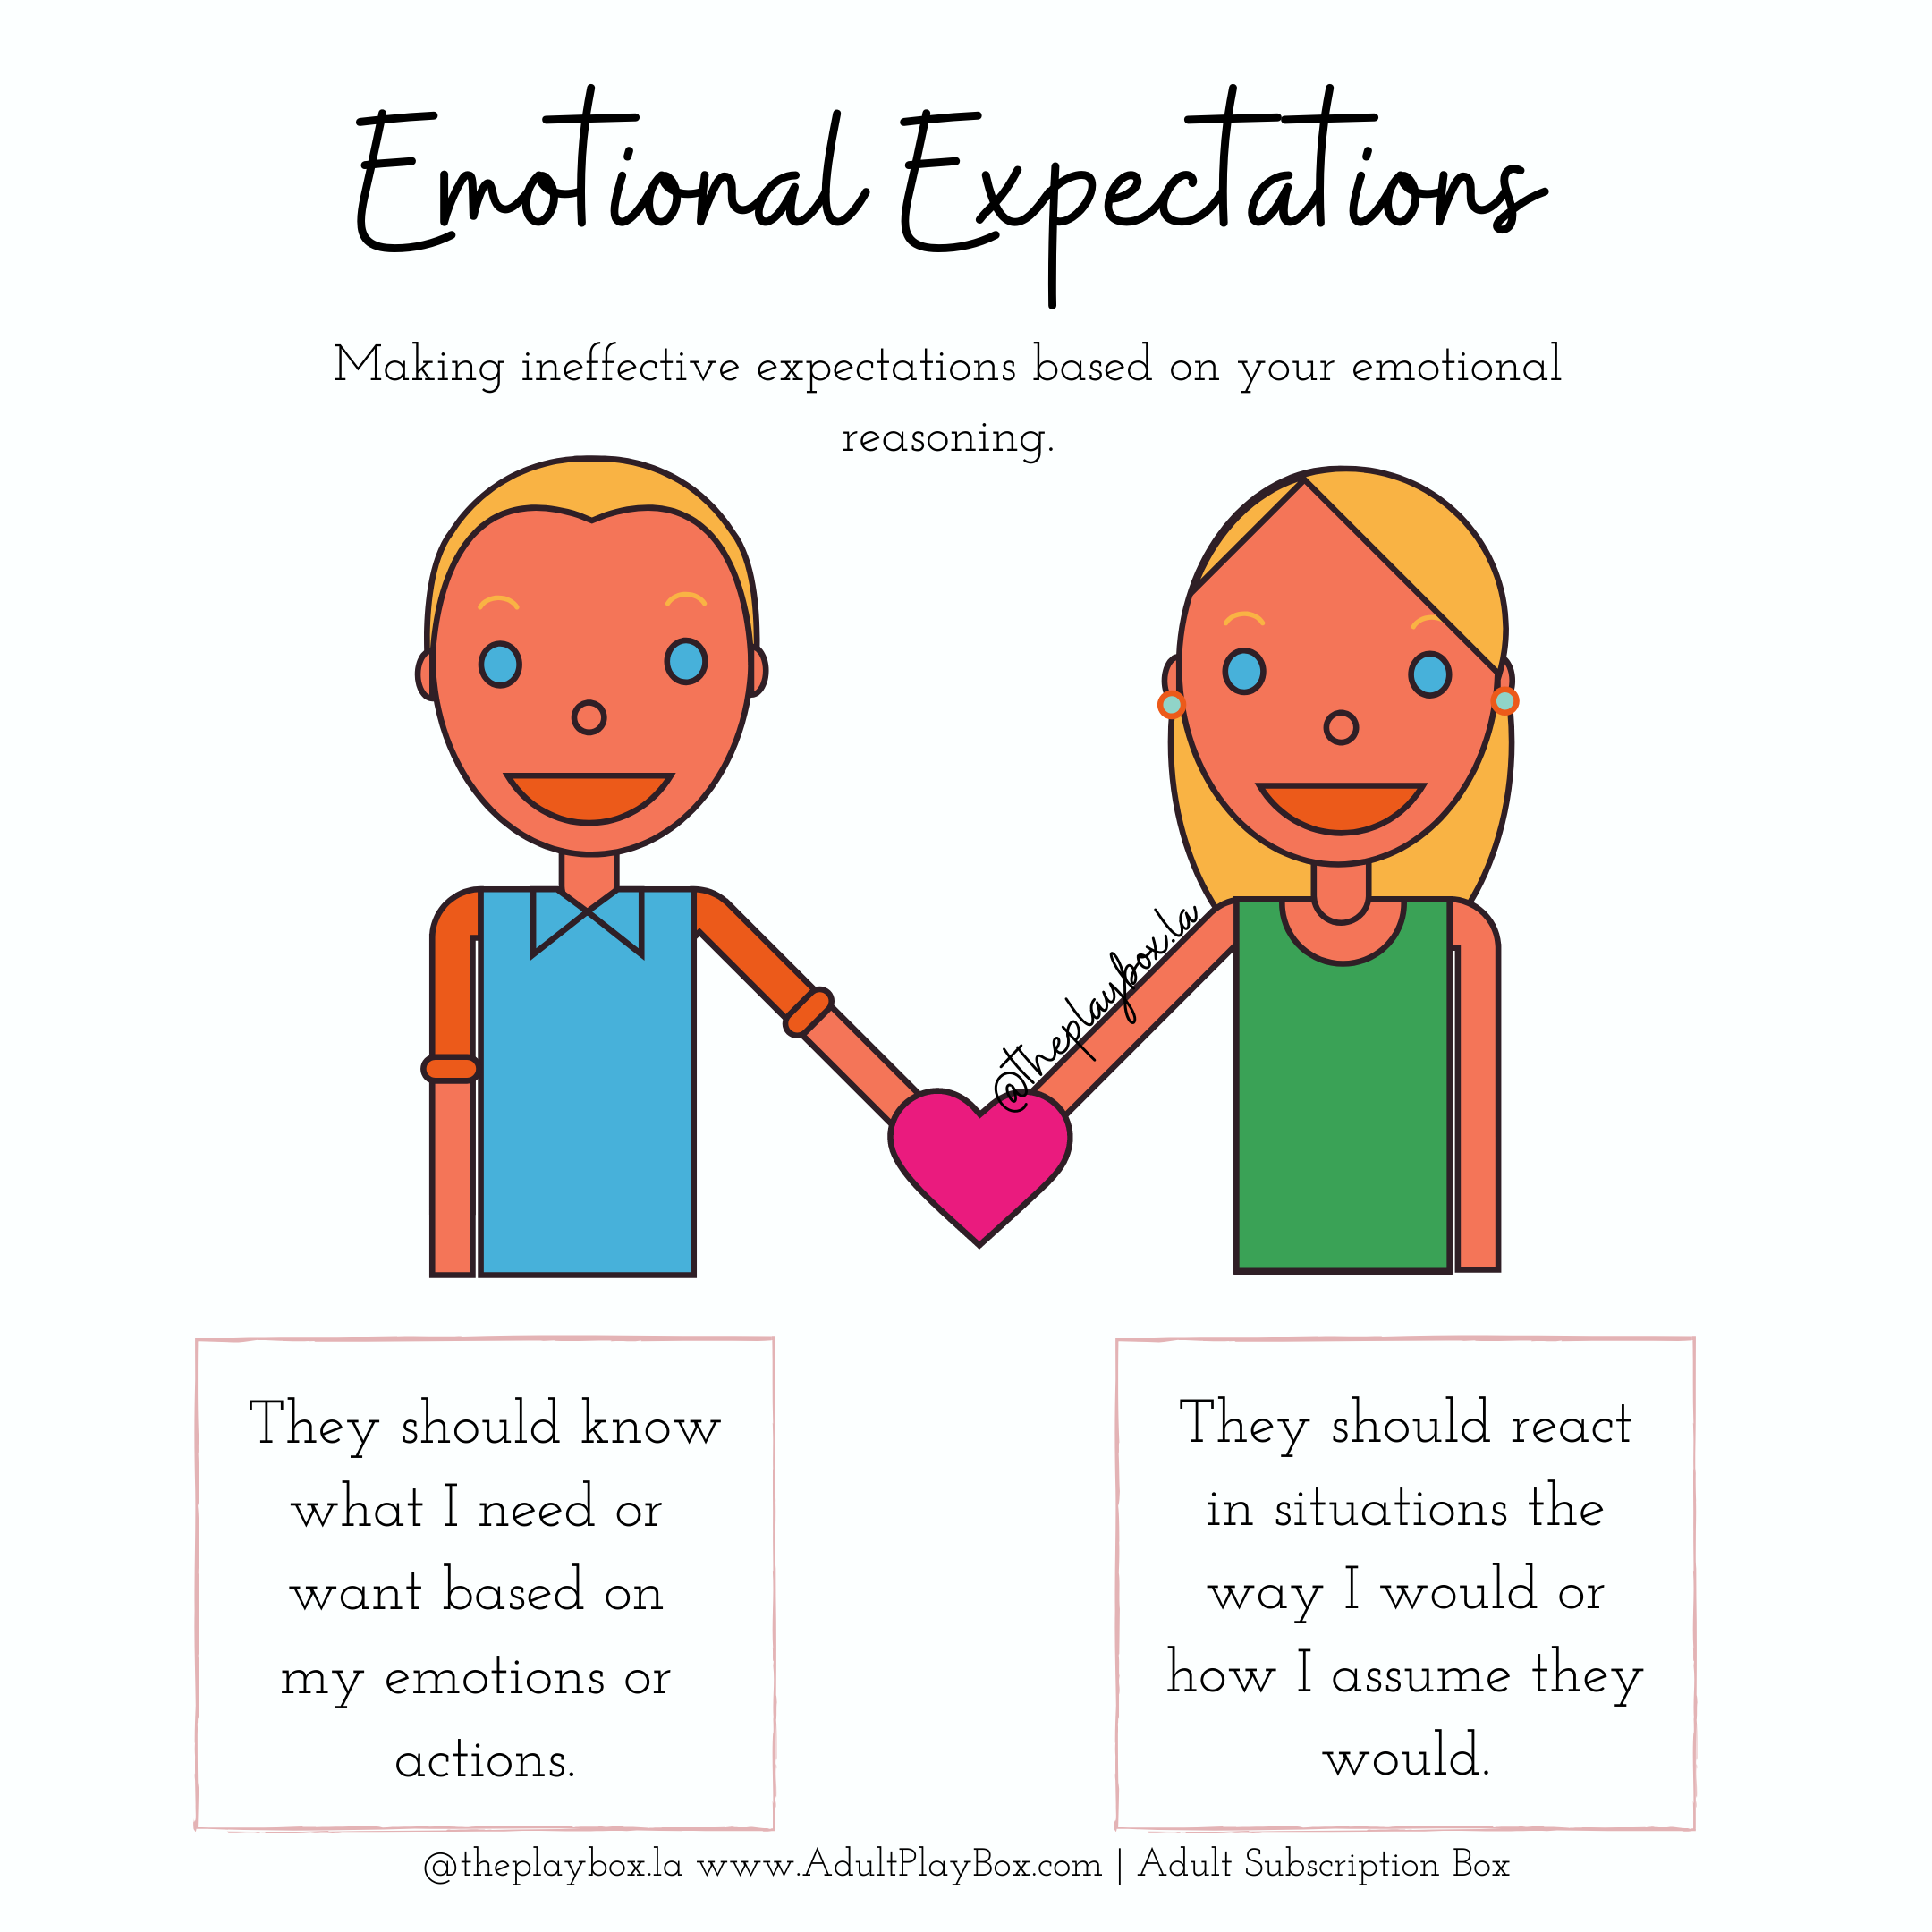 Emotional Expectations  #howtodisguiseyourself Emotions can often disguise our thoughts, feelings, expectations, and actions in truth. #howtodisguiseyourself